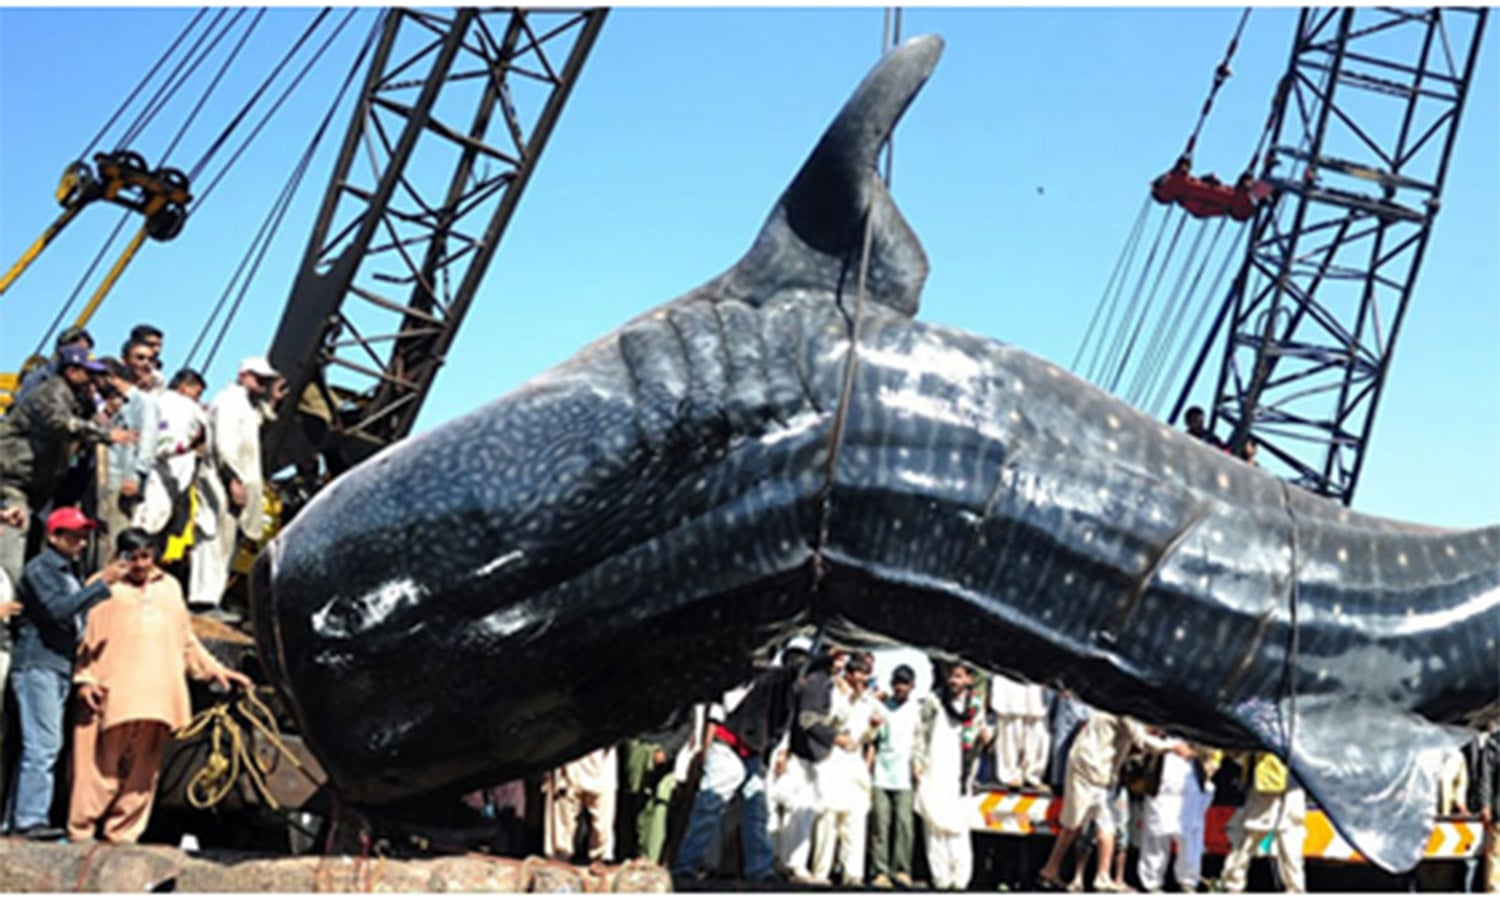 Cranes pull out a 40-ft 'whale shark' from the waters of the harbor.